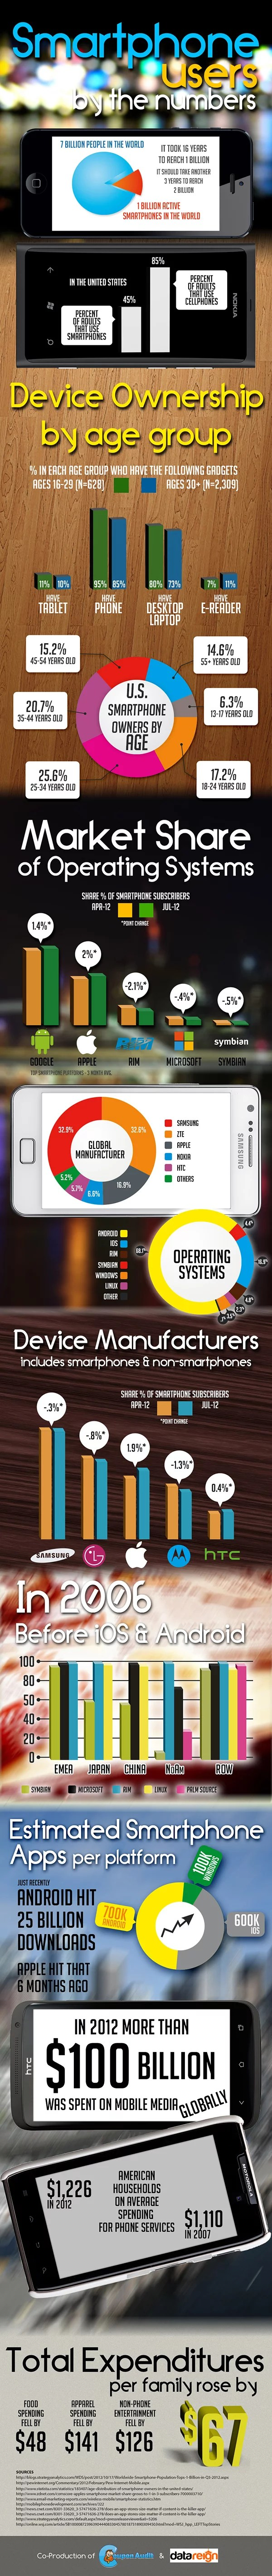 Quick Snap on Smartphone Users in the World By The Number [Infographic]